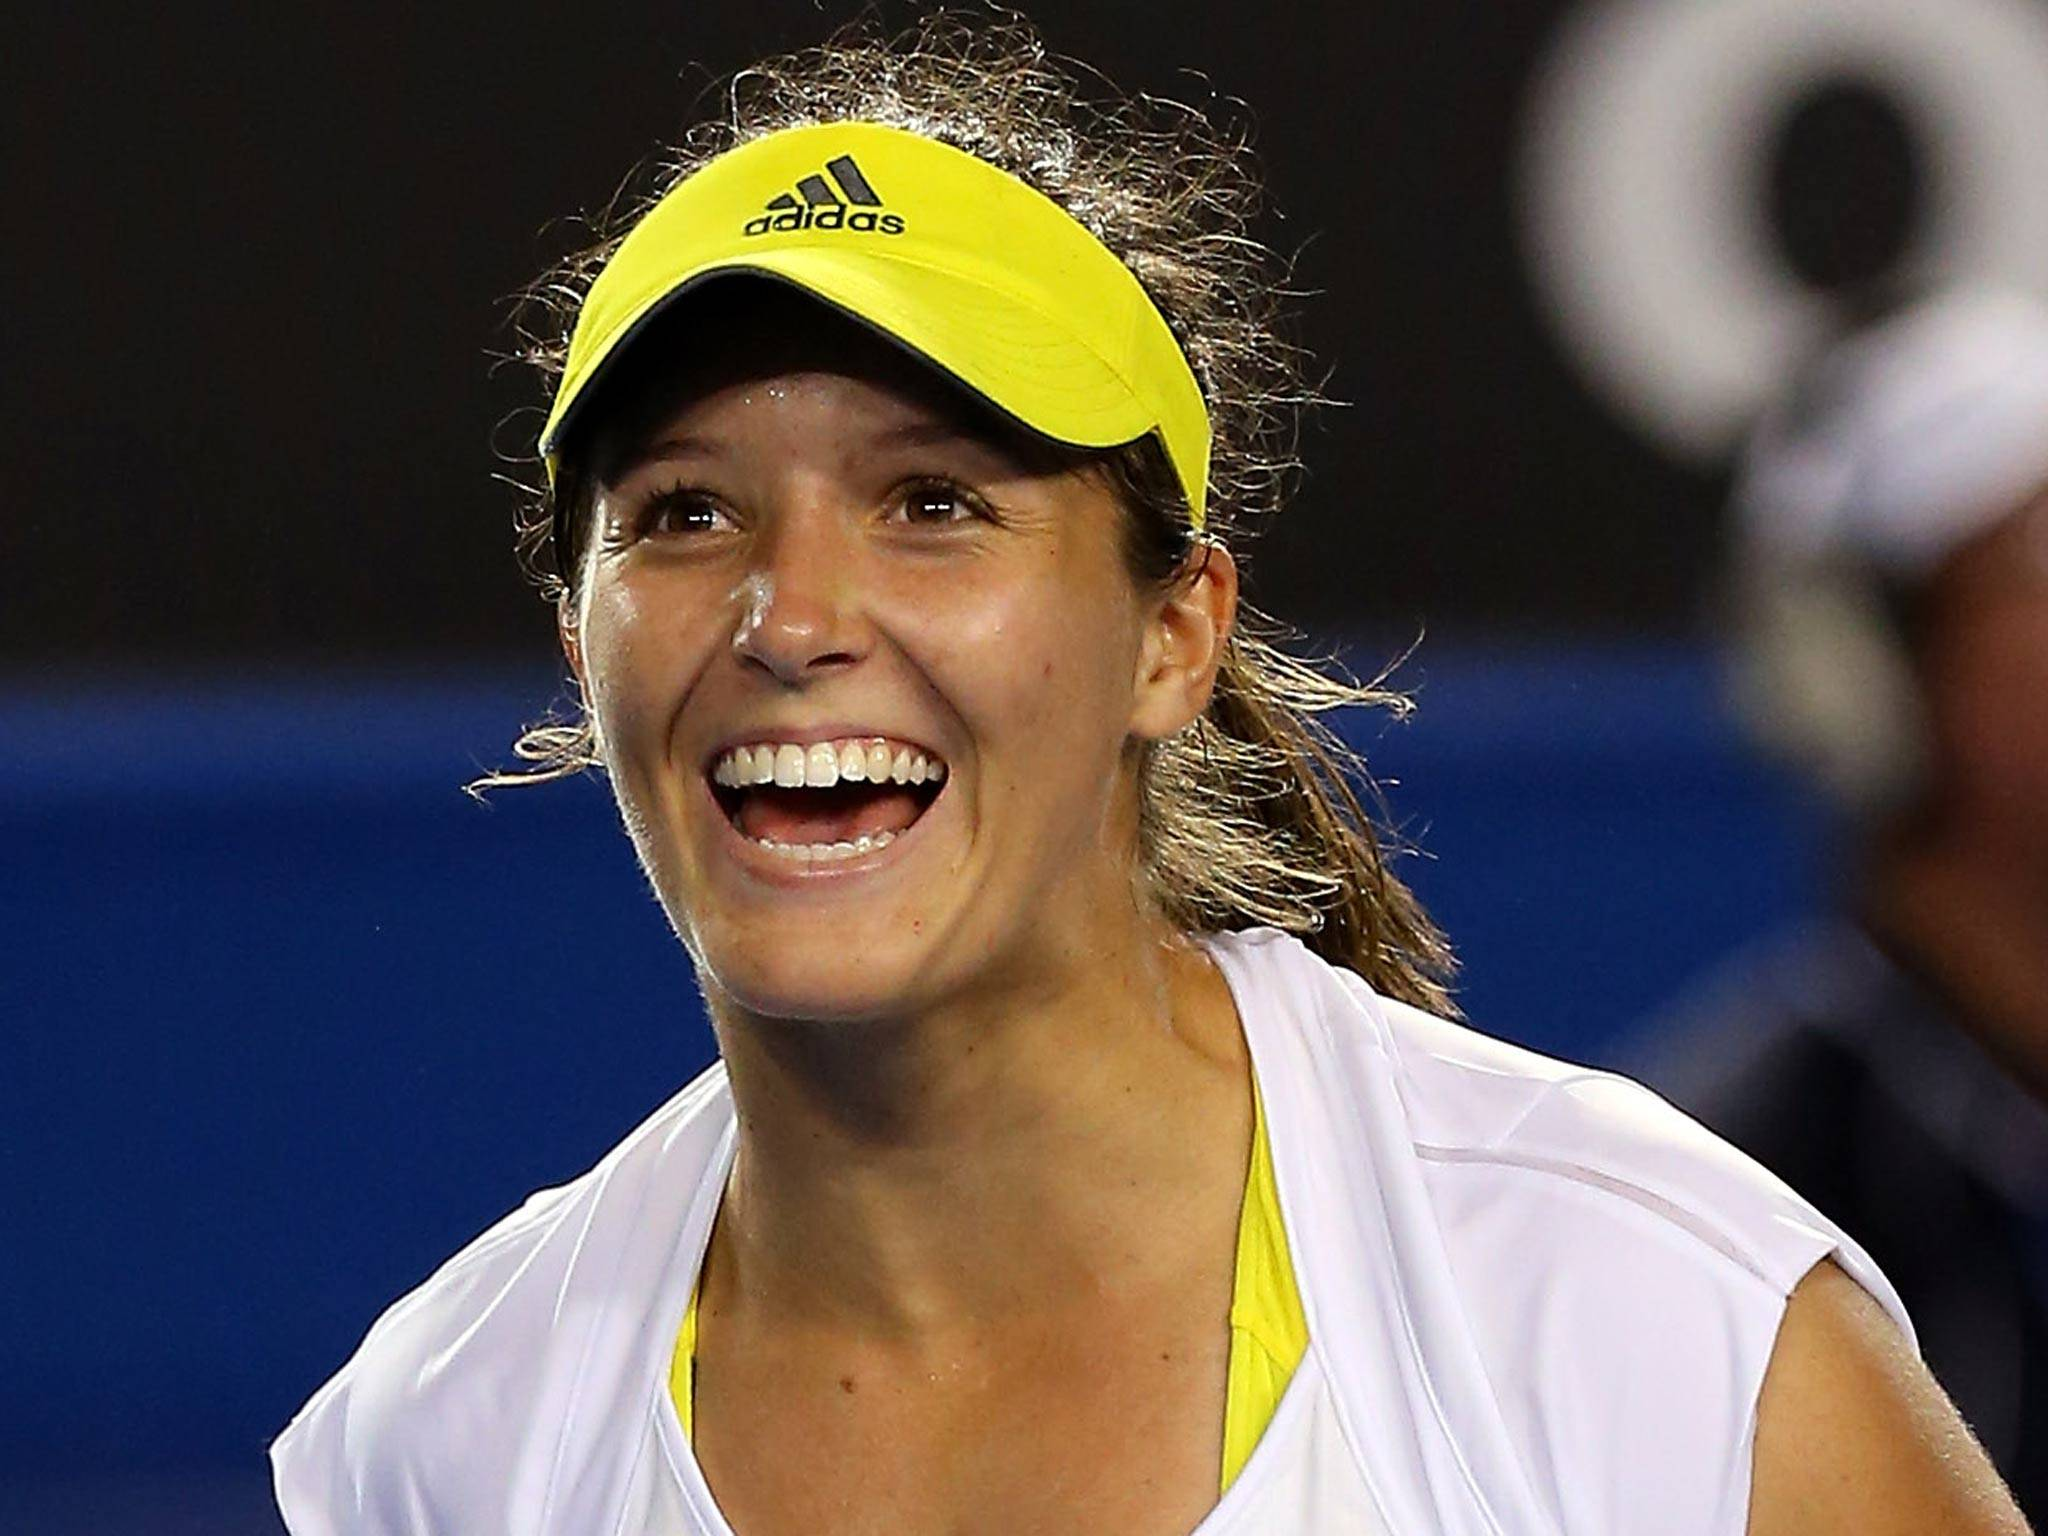 Happy: Laura Robson after being told Rishi Persad was waiting to interview her.